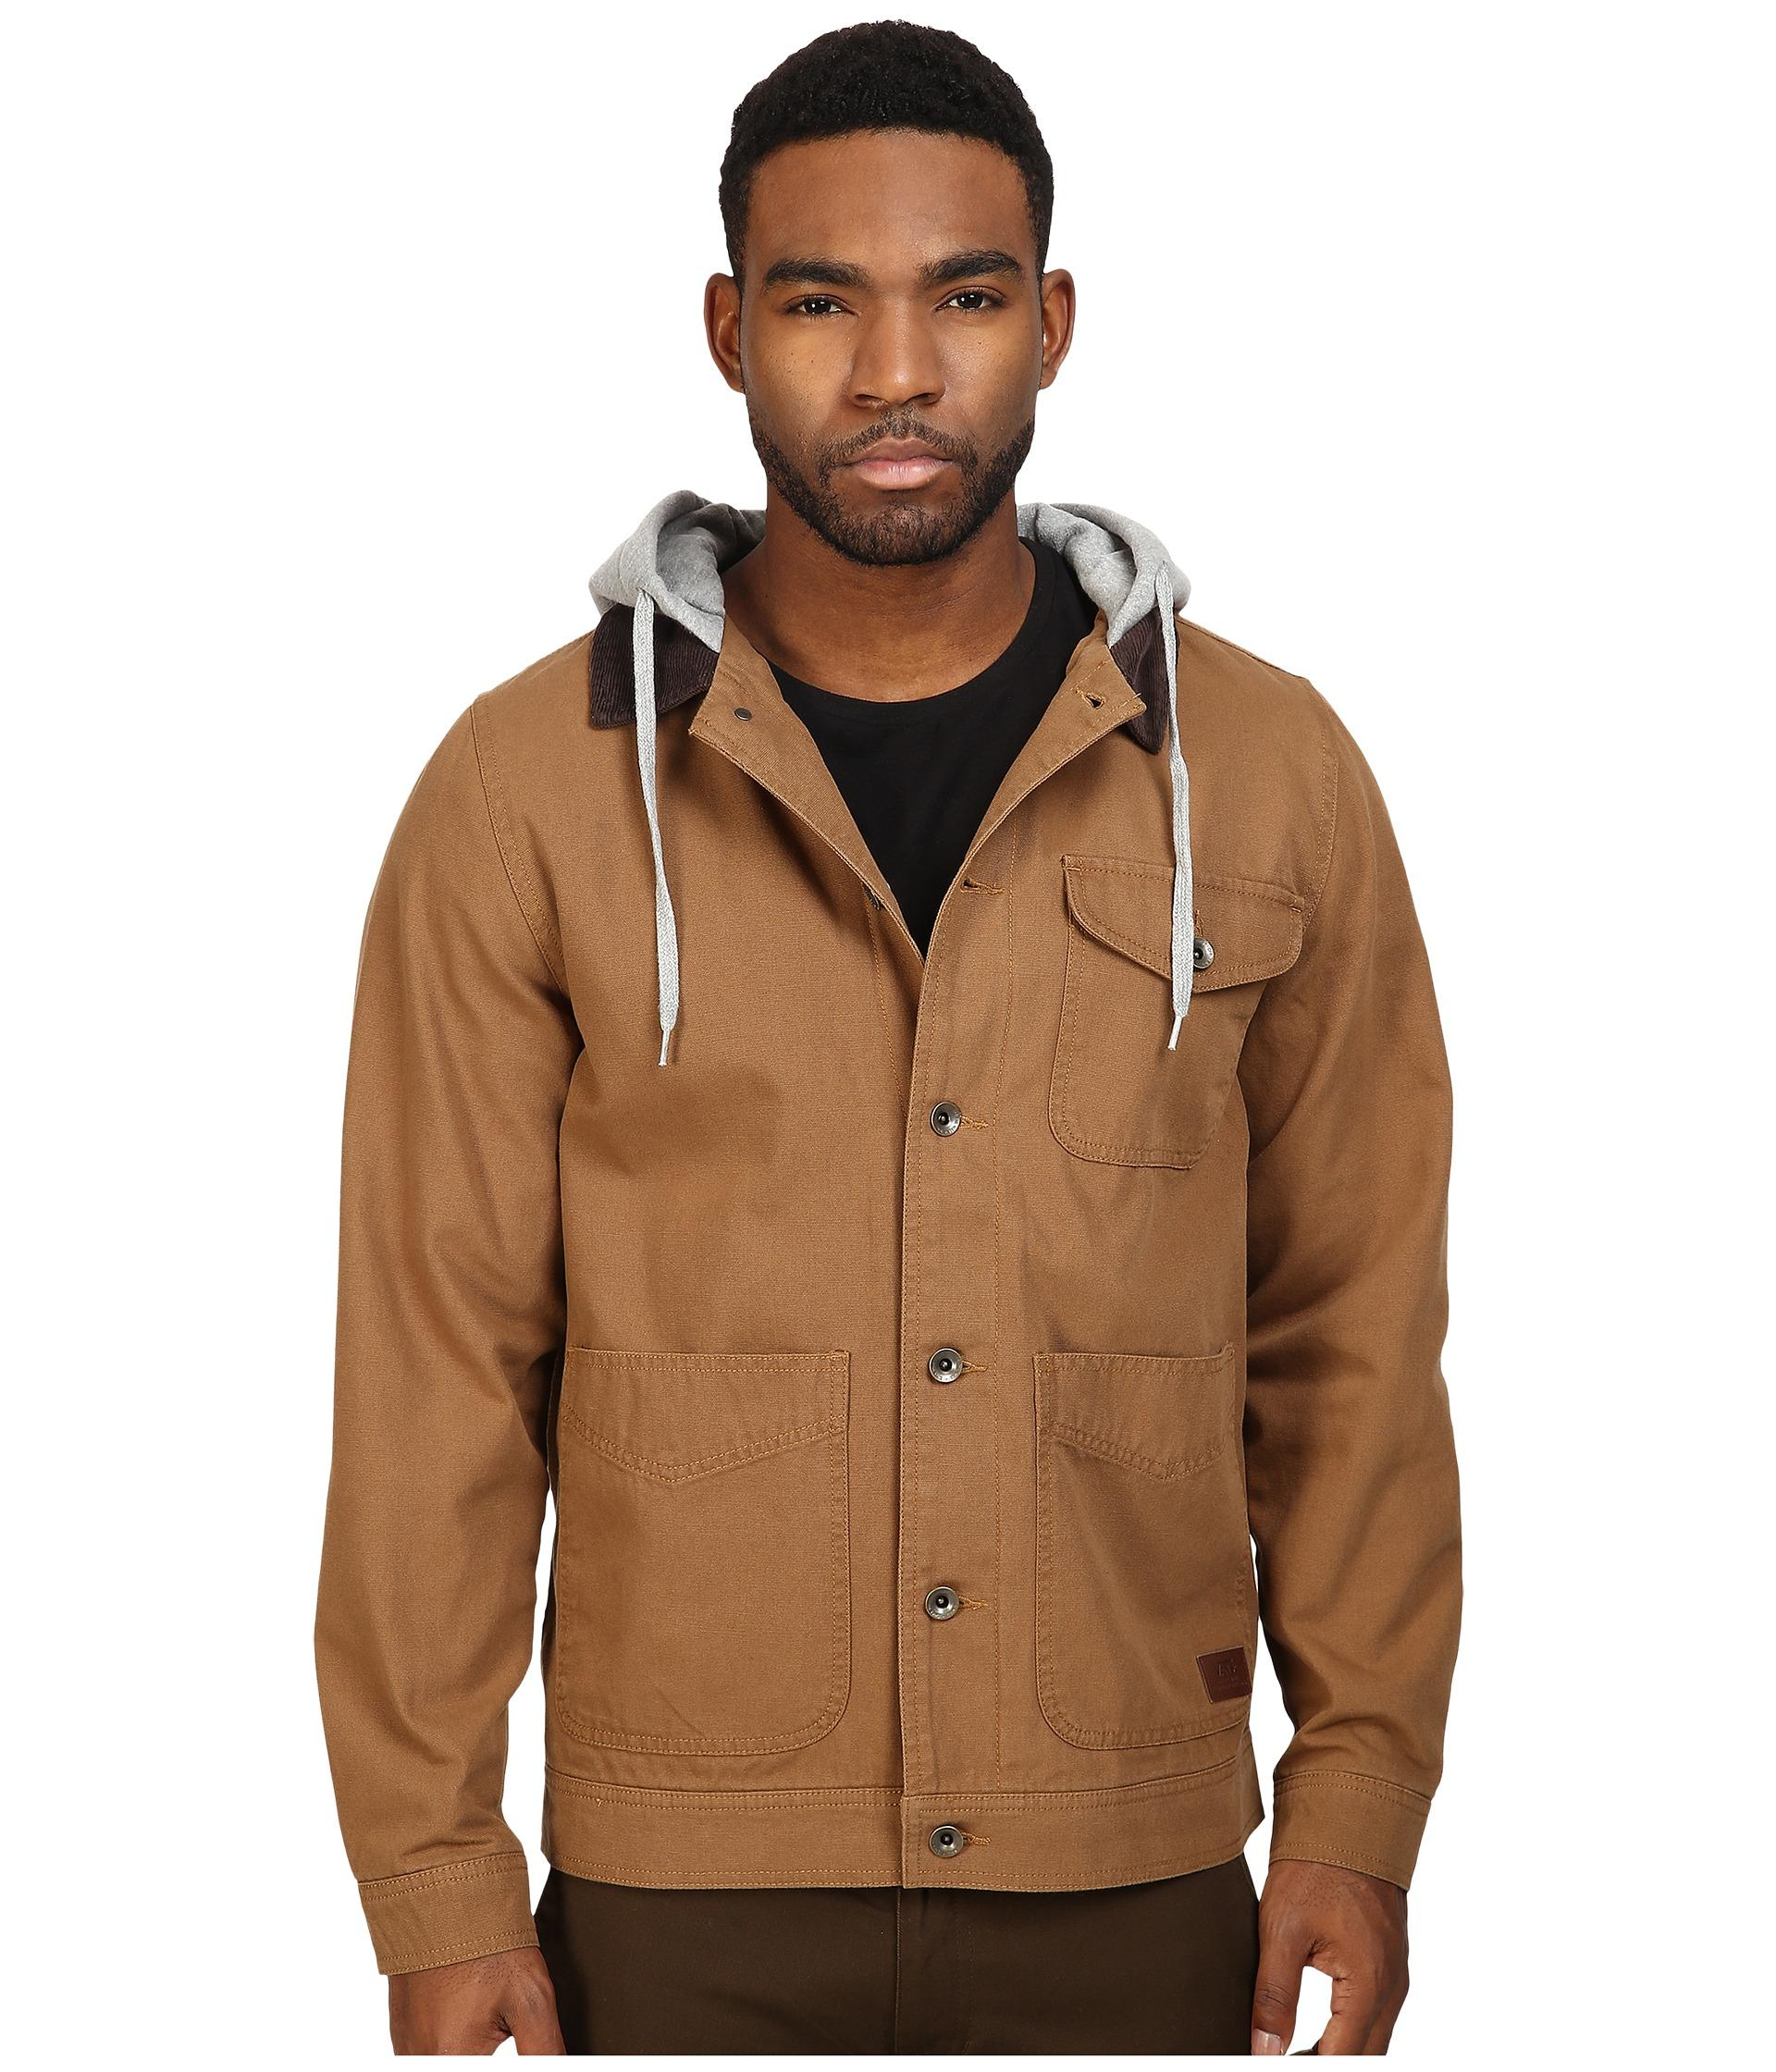 d4f43a0a03 Lyst - Vans Prentice Jacket for Men